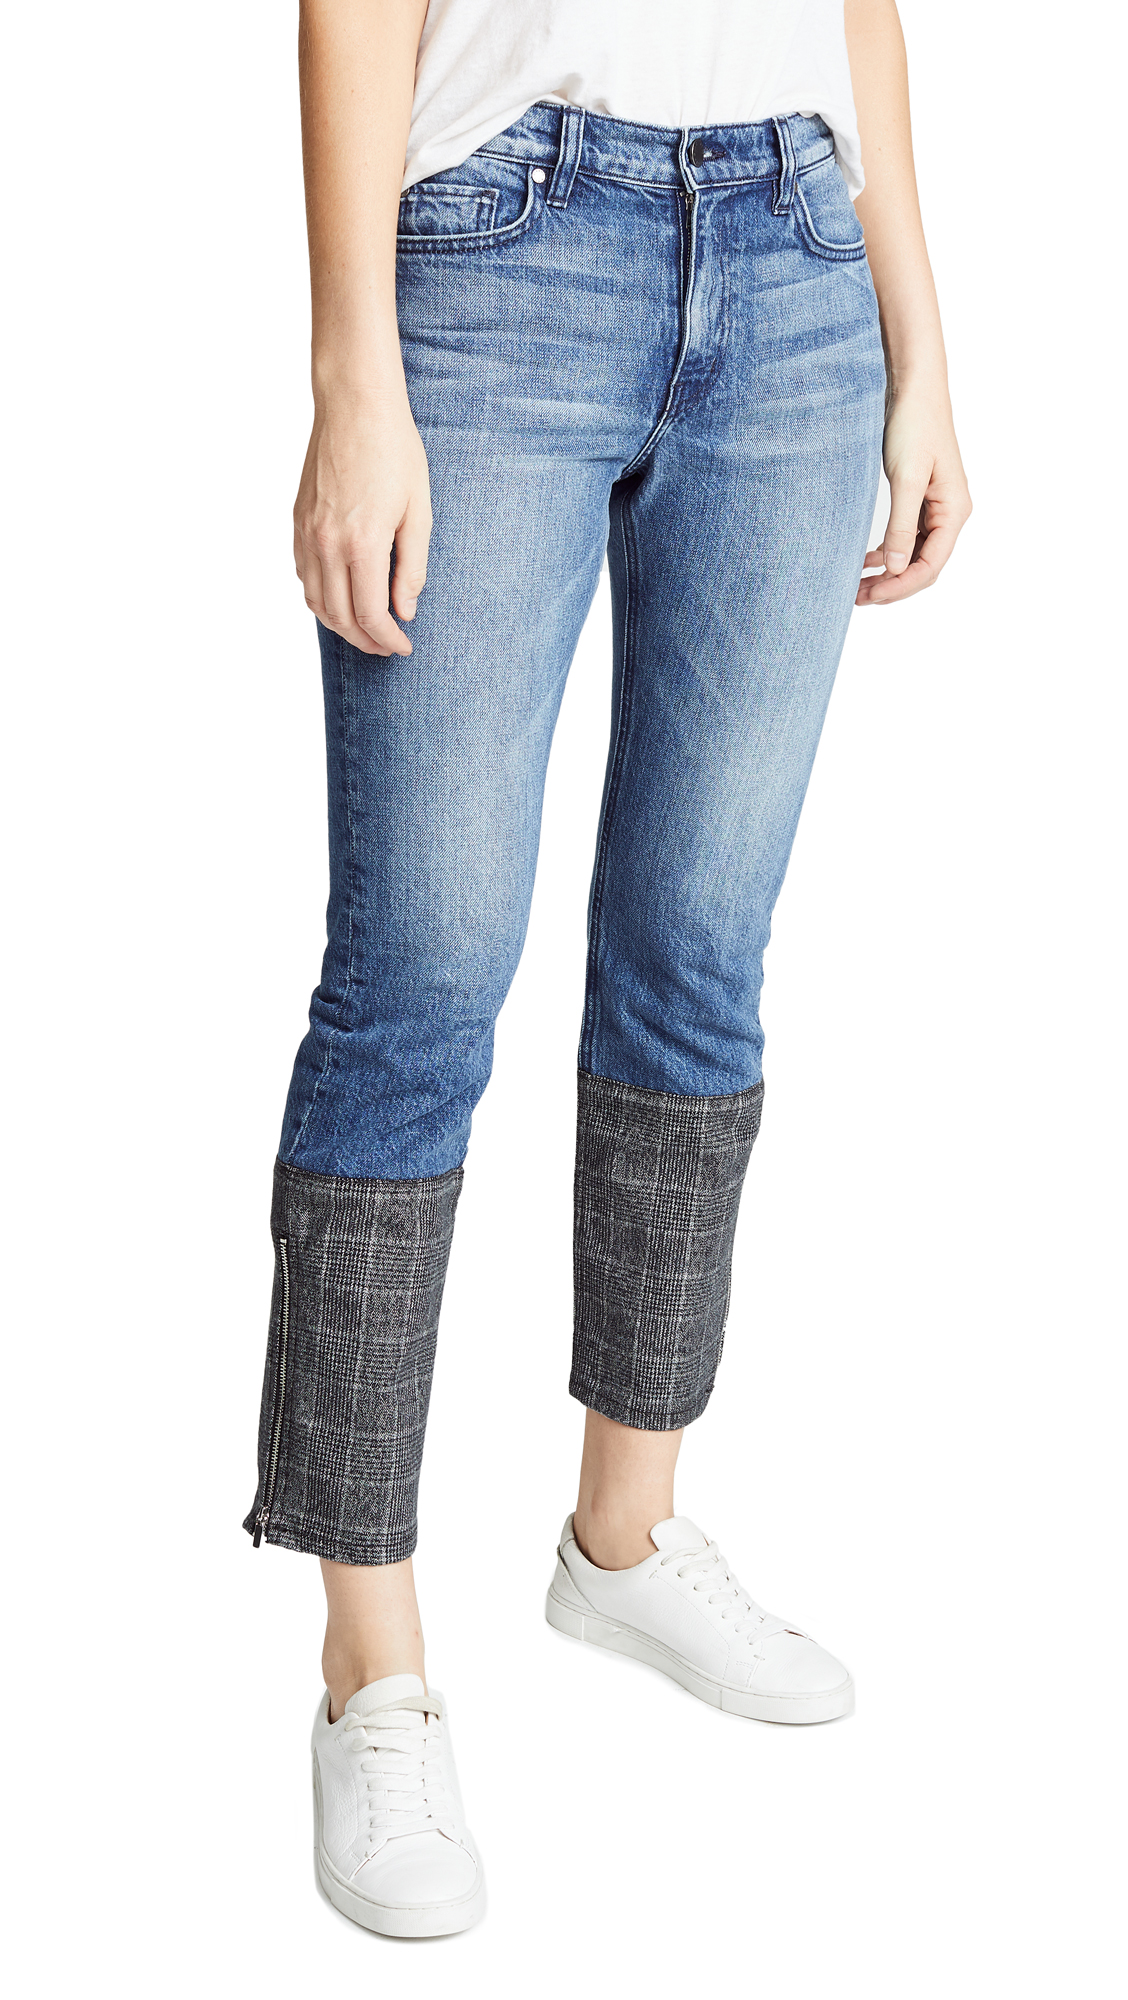 EI8HTDREAMS STRAIGHT LEG JEANS WITH PLAID CUFFS